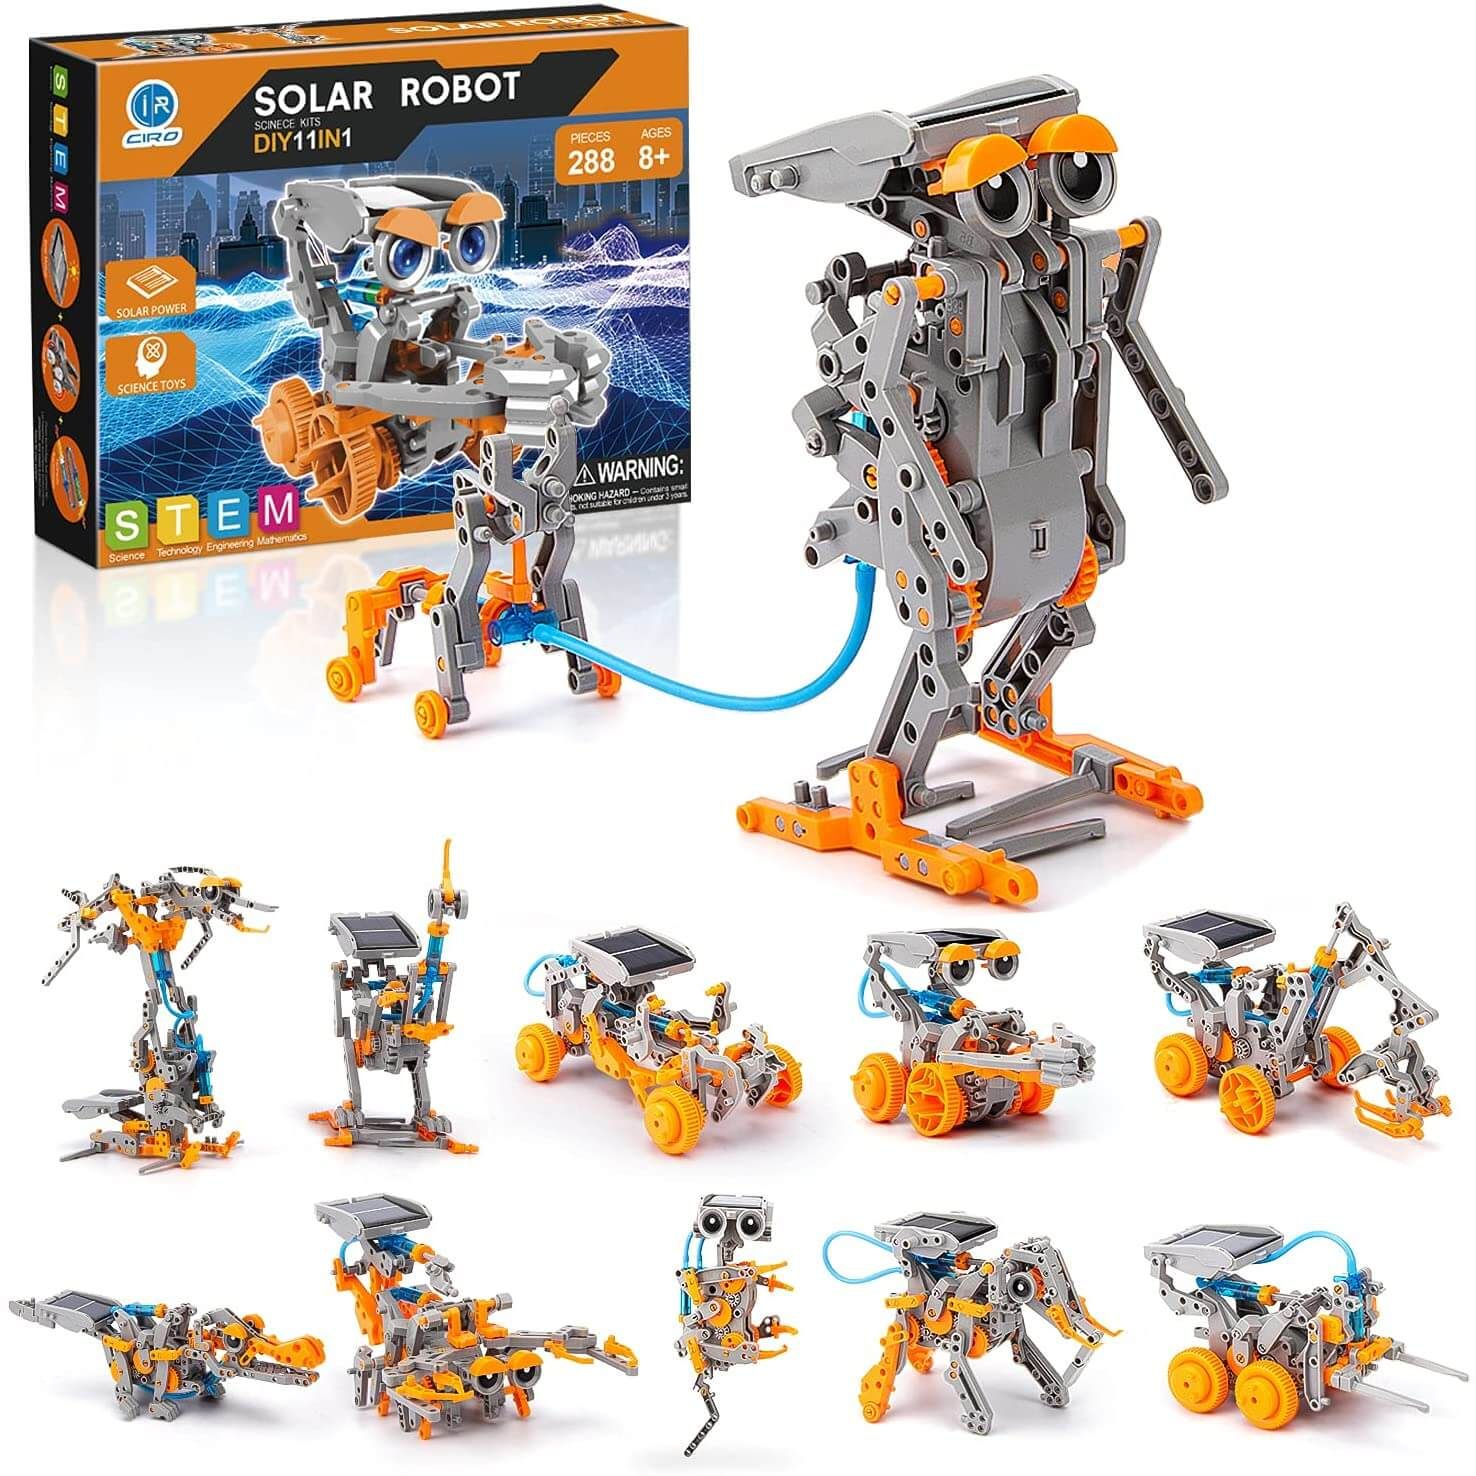 CIRO STEM Projects Solar Robot Toys 11-in-1 Education Science Experiment Kits